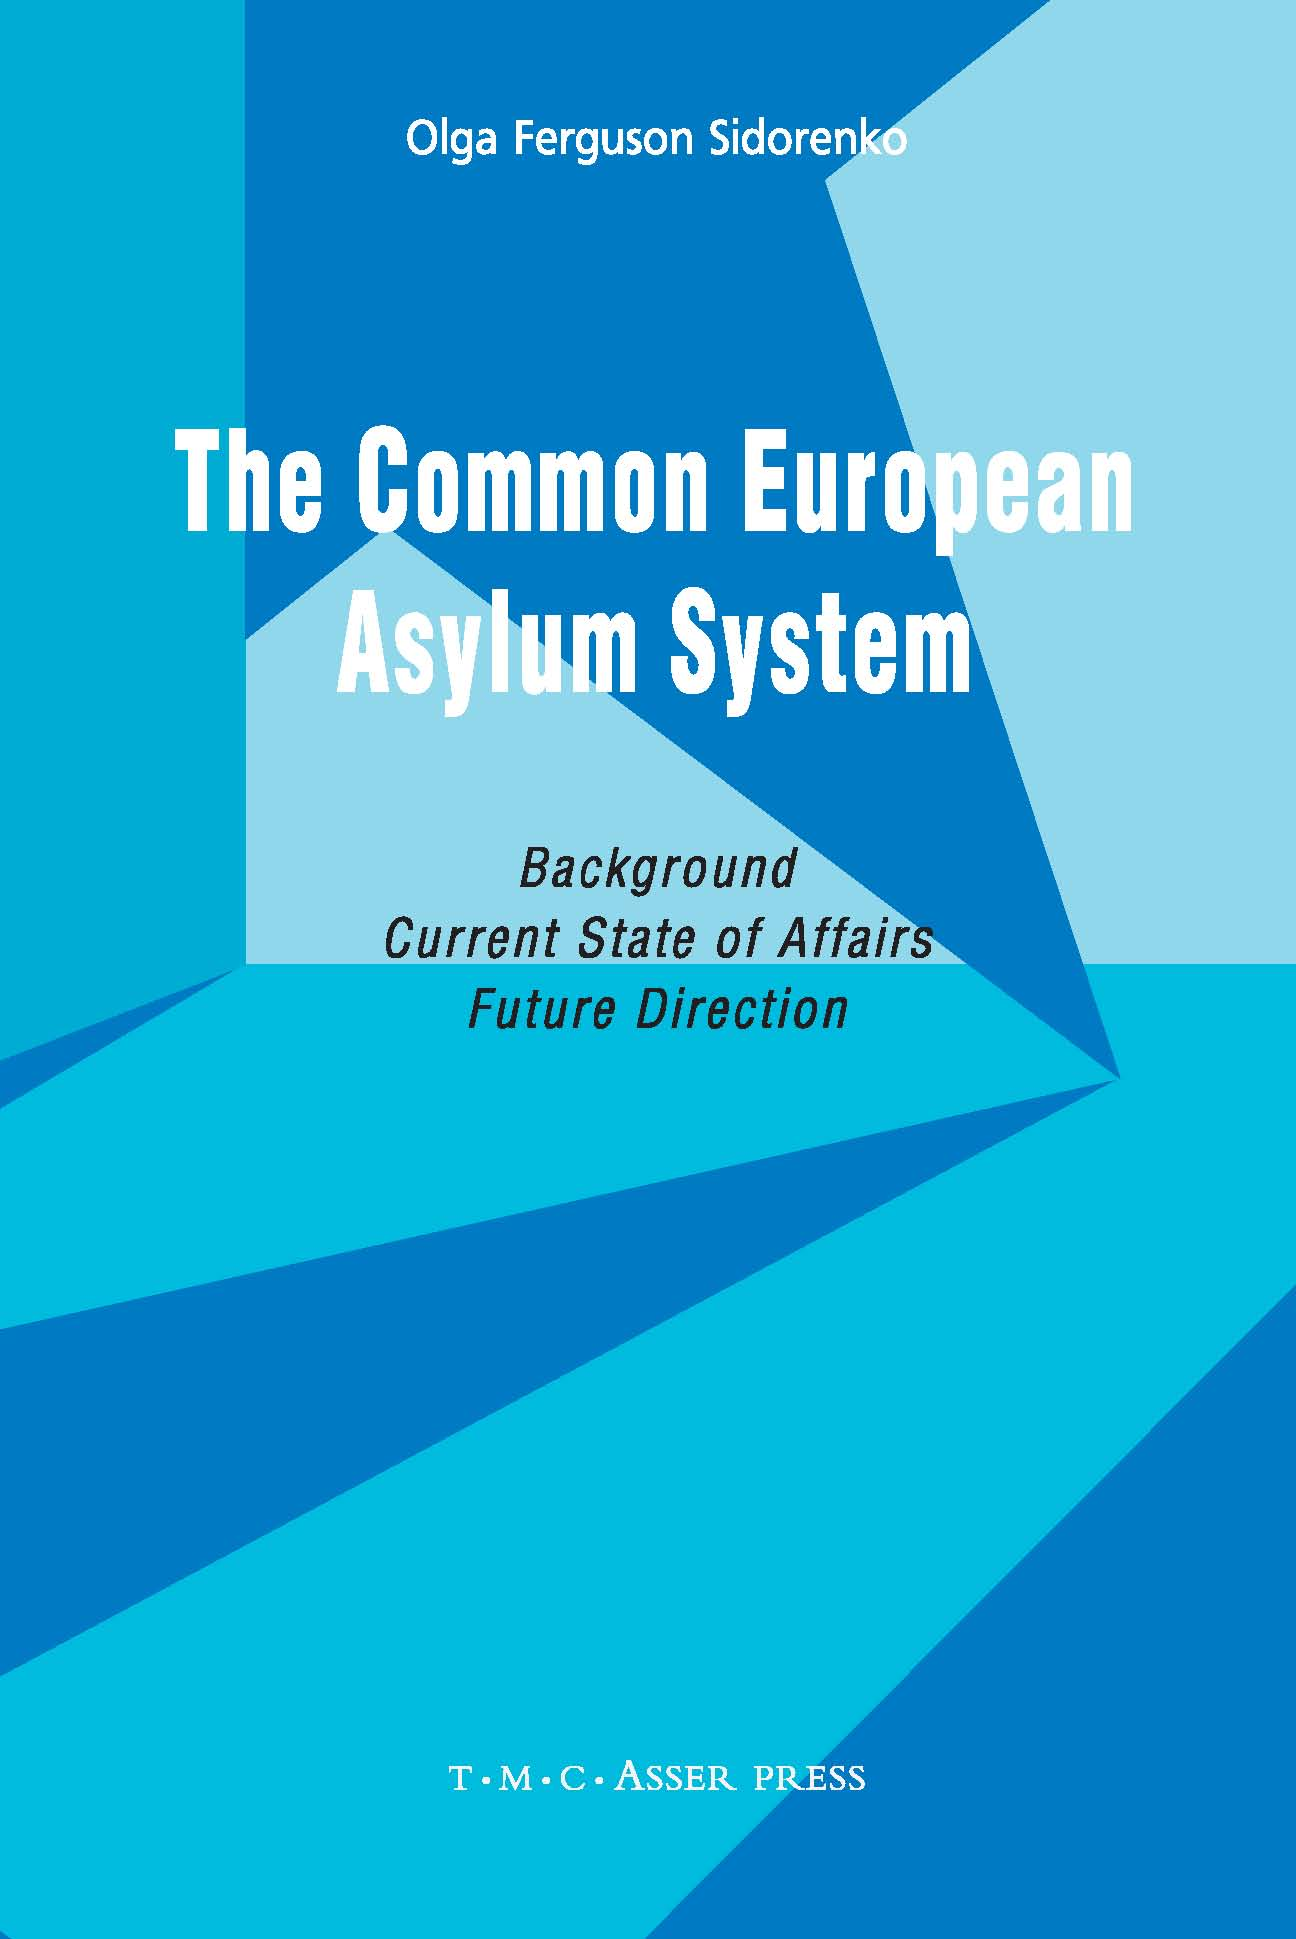 The Common European Asylum System - Background, Current State of Affairs, Future Direction